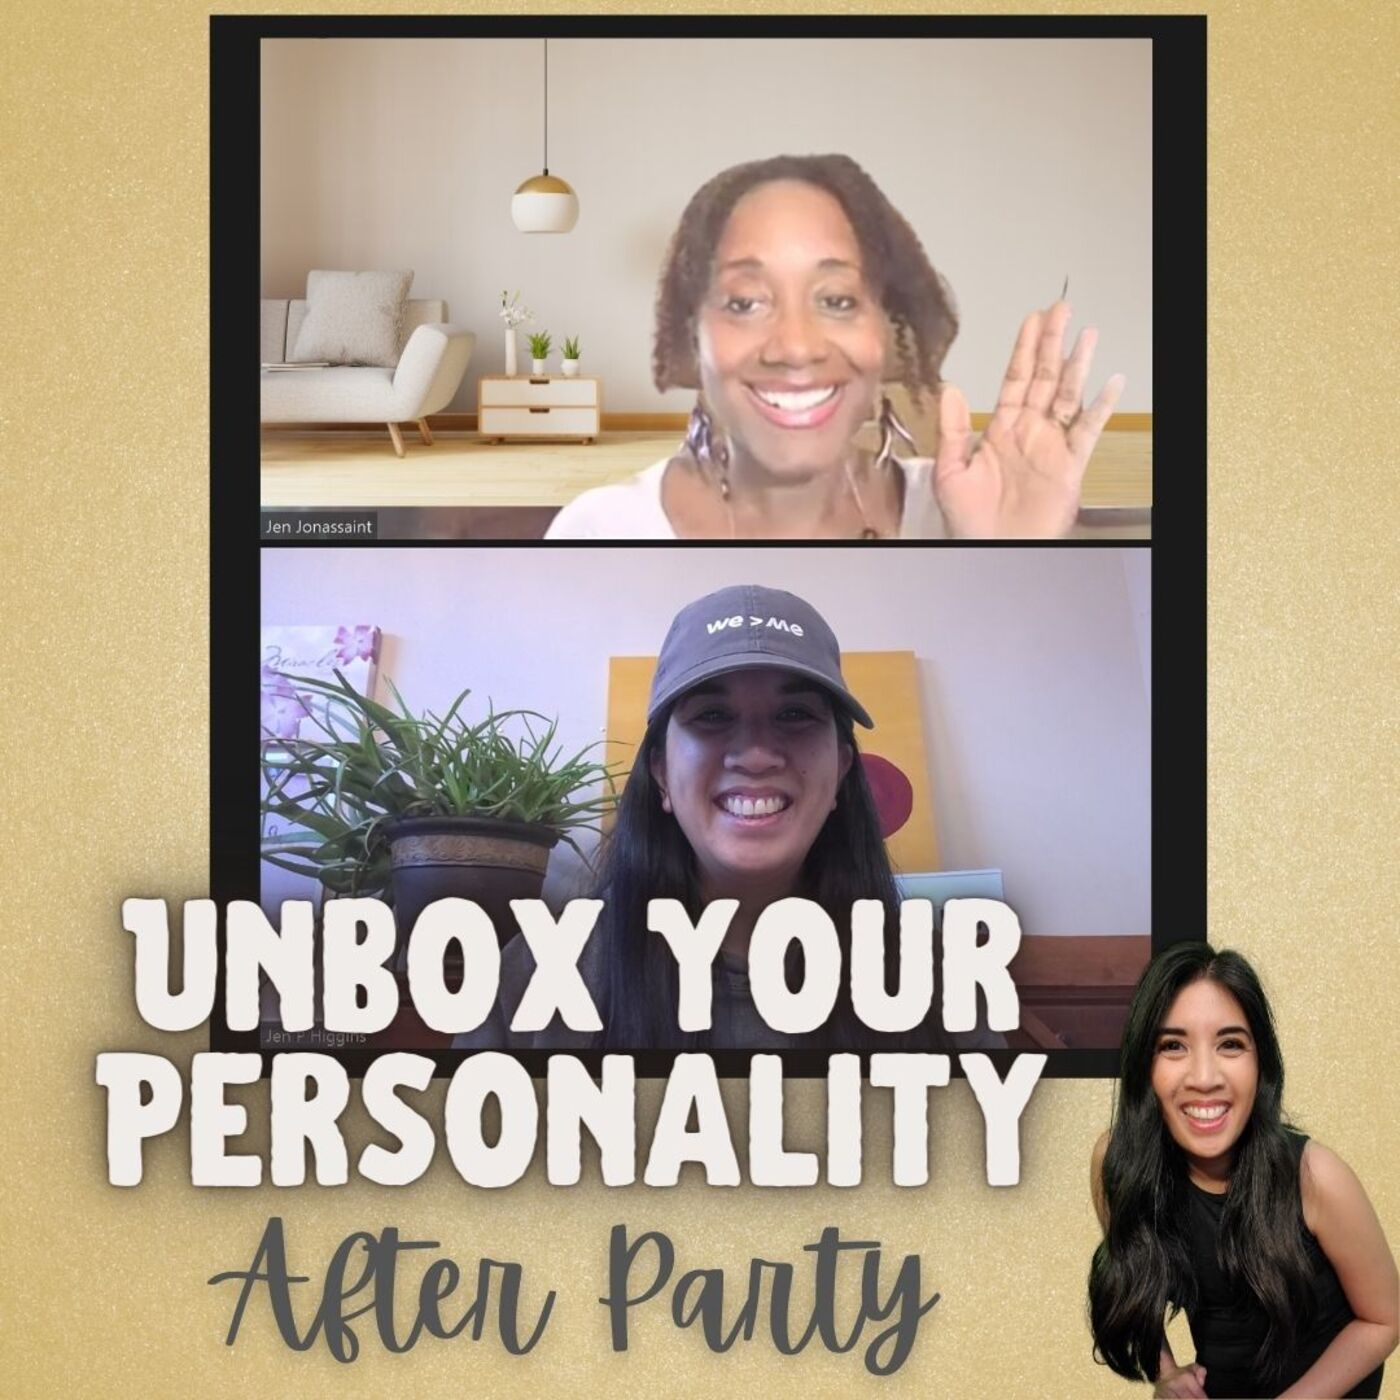 Ep012 - More on Wings, Types 1, 3, 5, 6, 7, 8, and Self-Care - The After Party with Jen Jonassaint, Type 7